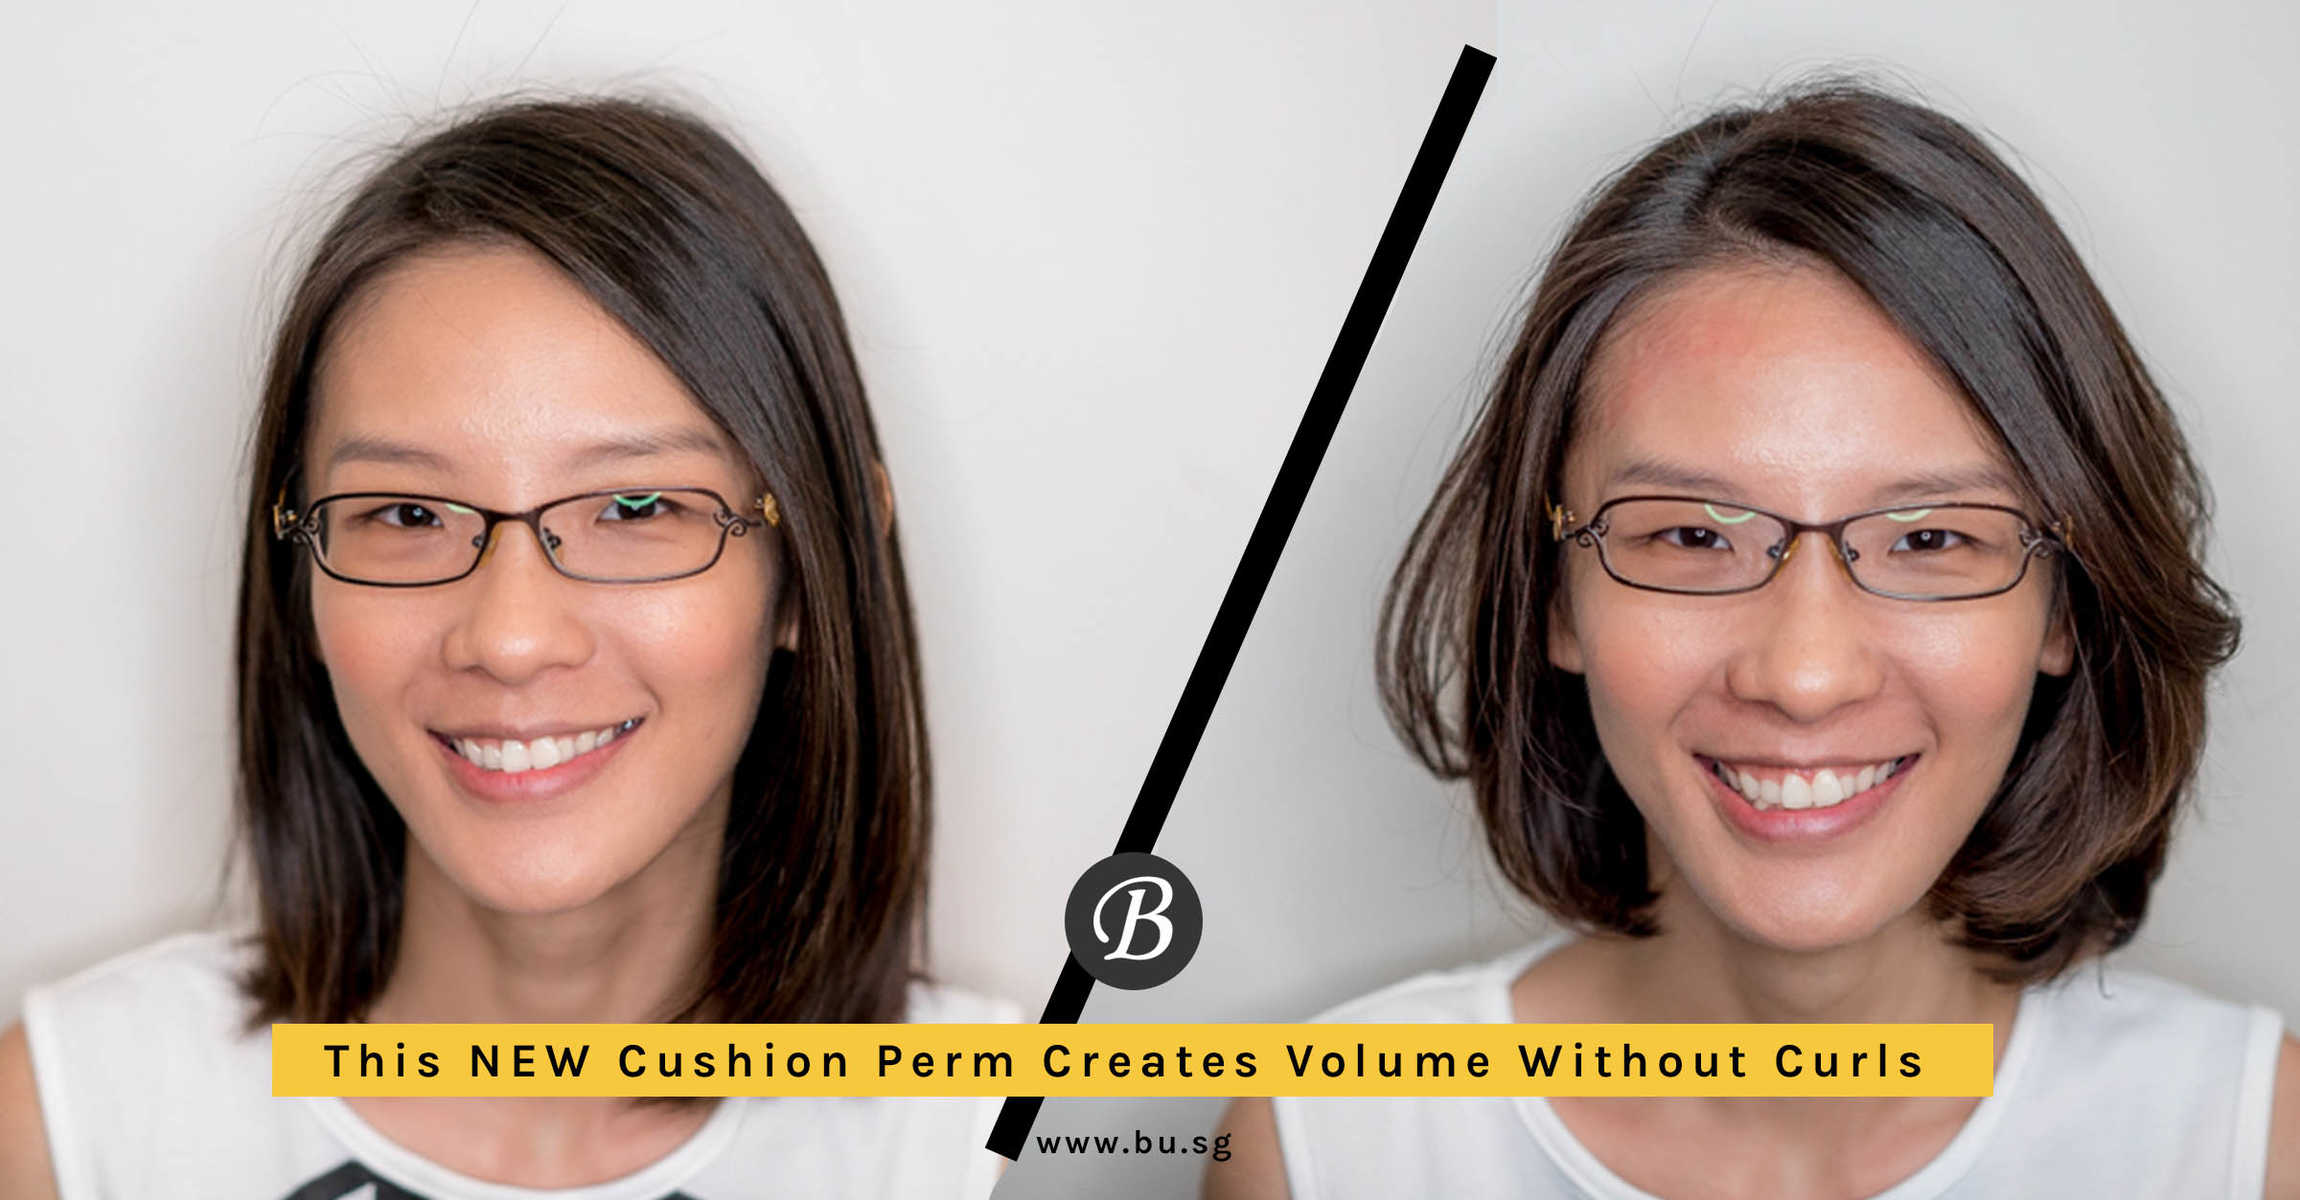 Want Volume Without the Curls? This New Cushion Perm Gives You Volume at the Roots and The Body Without Making Your Hair Curly